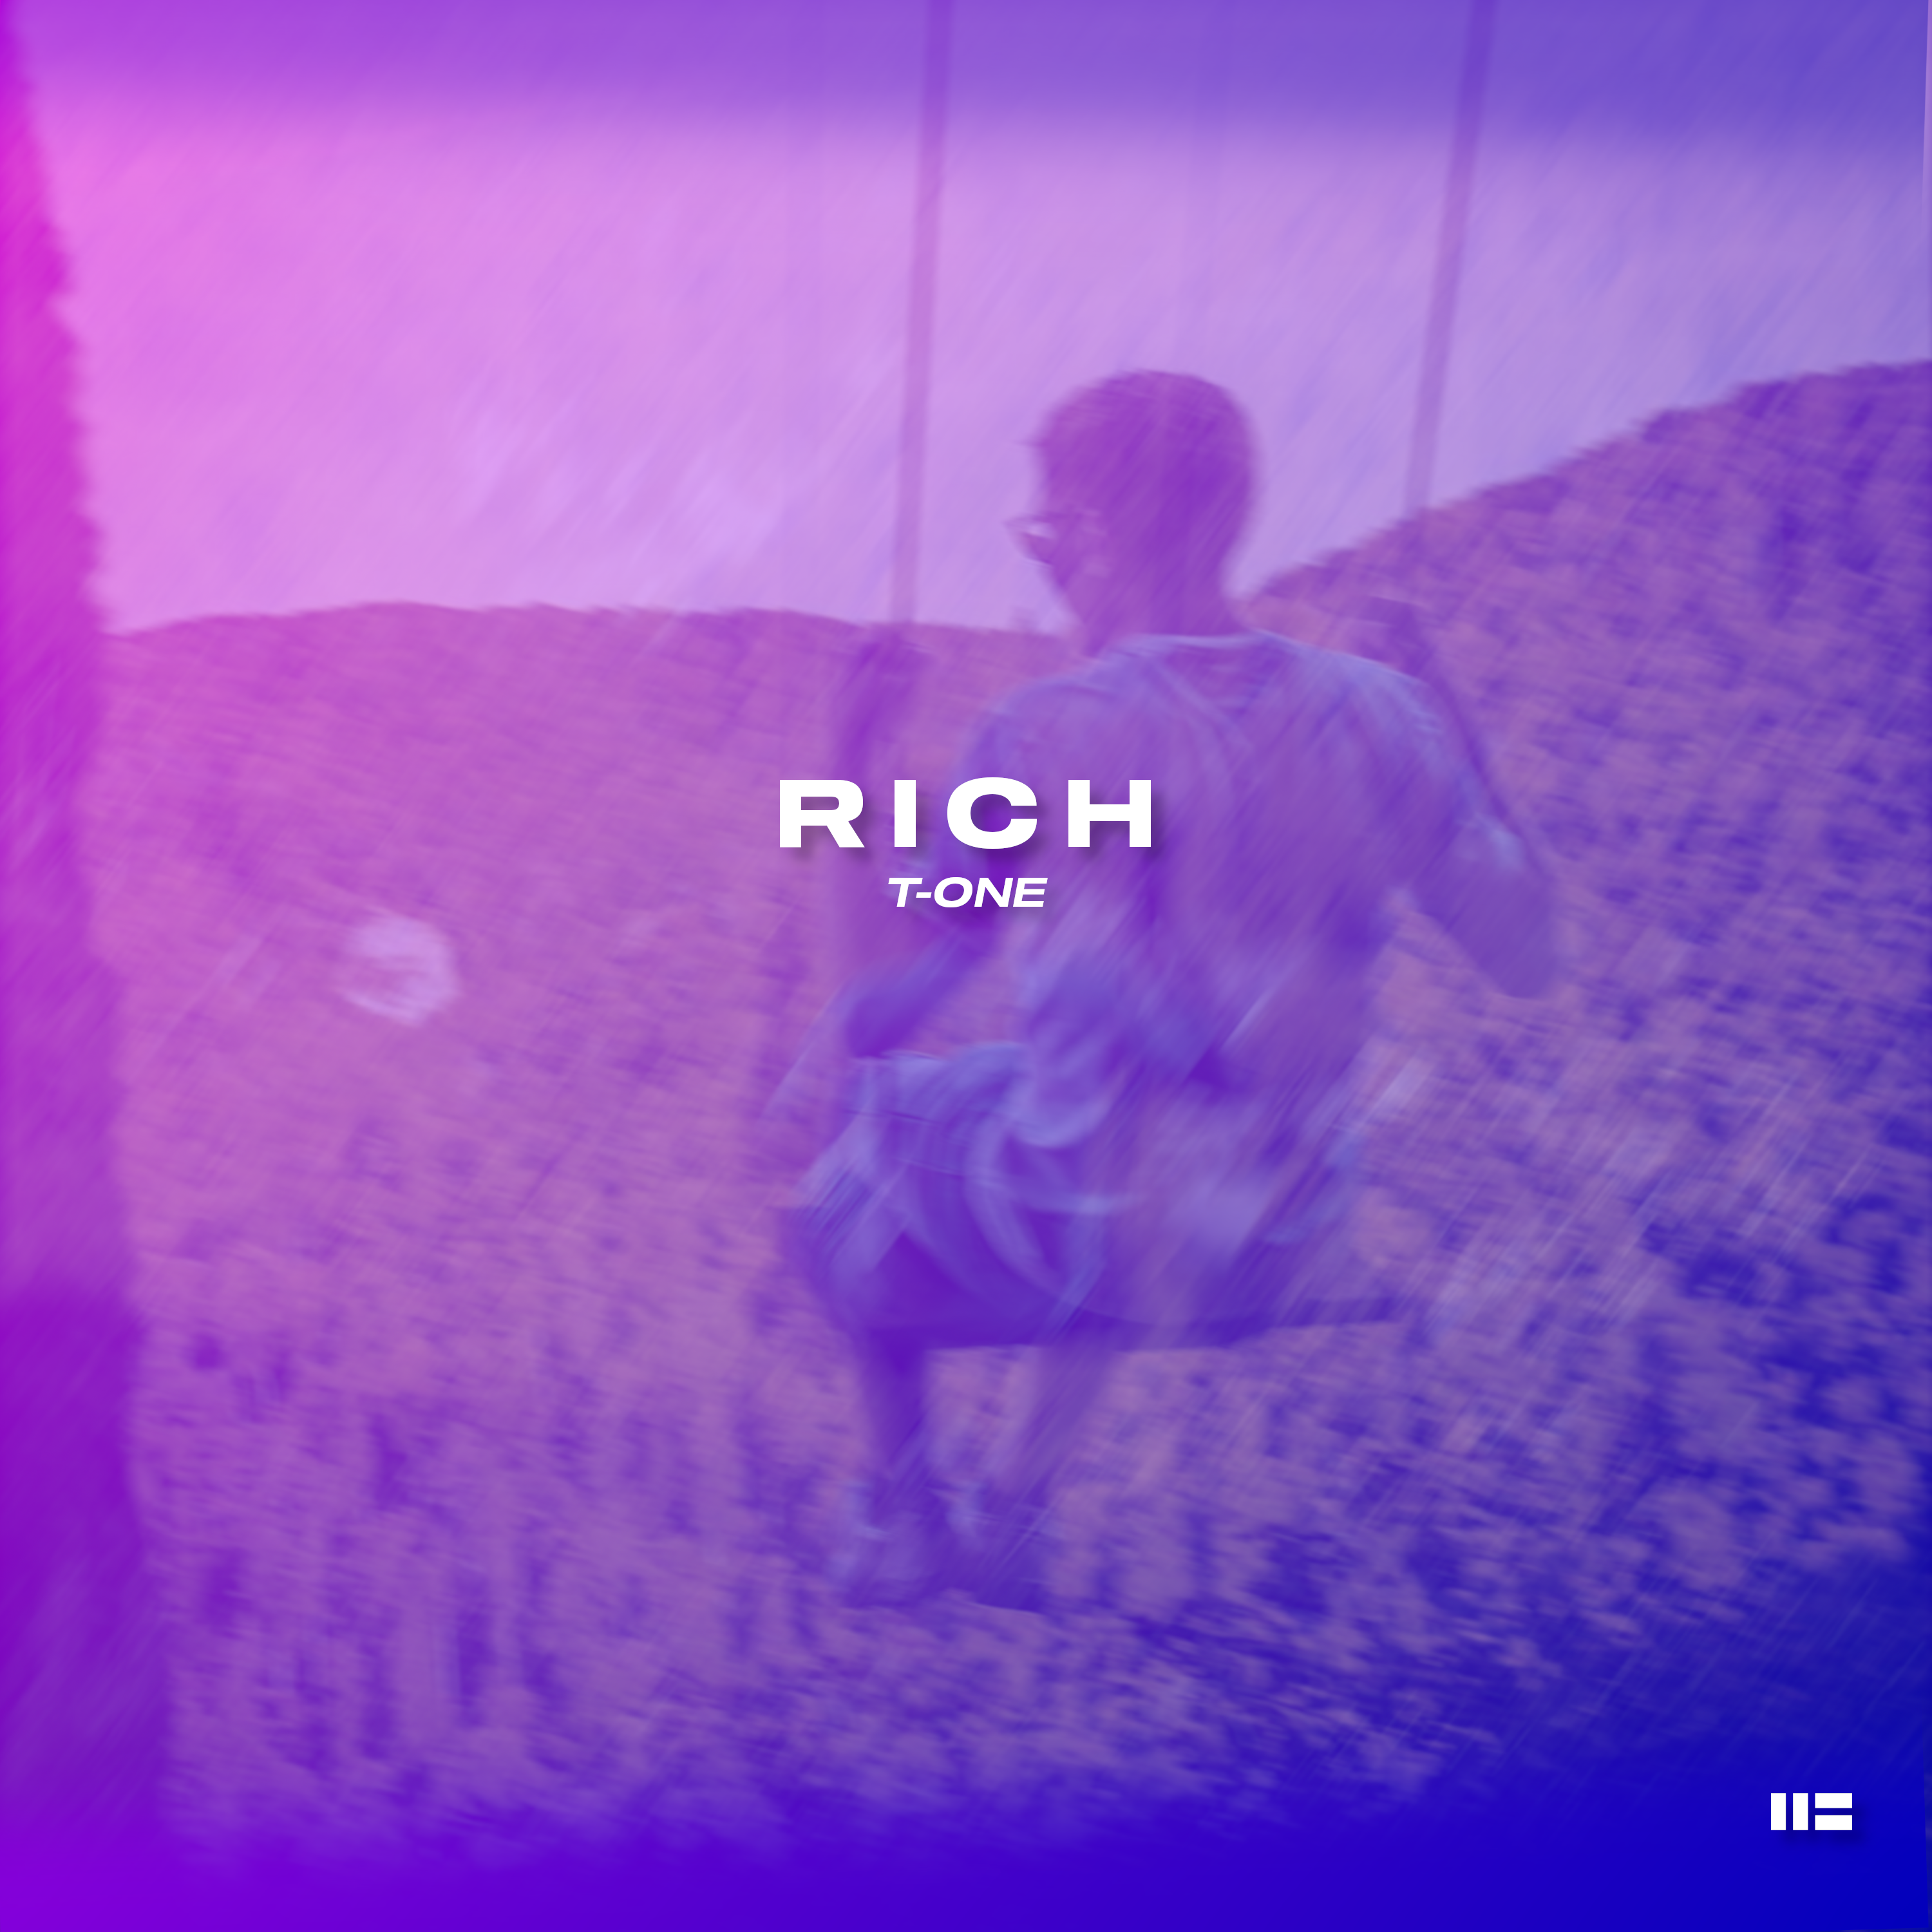 T-one rich